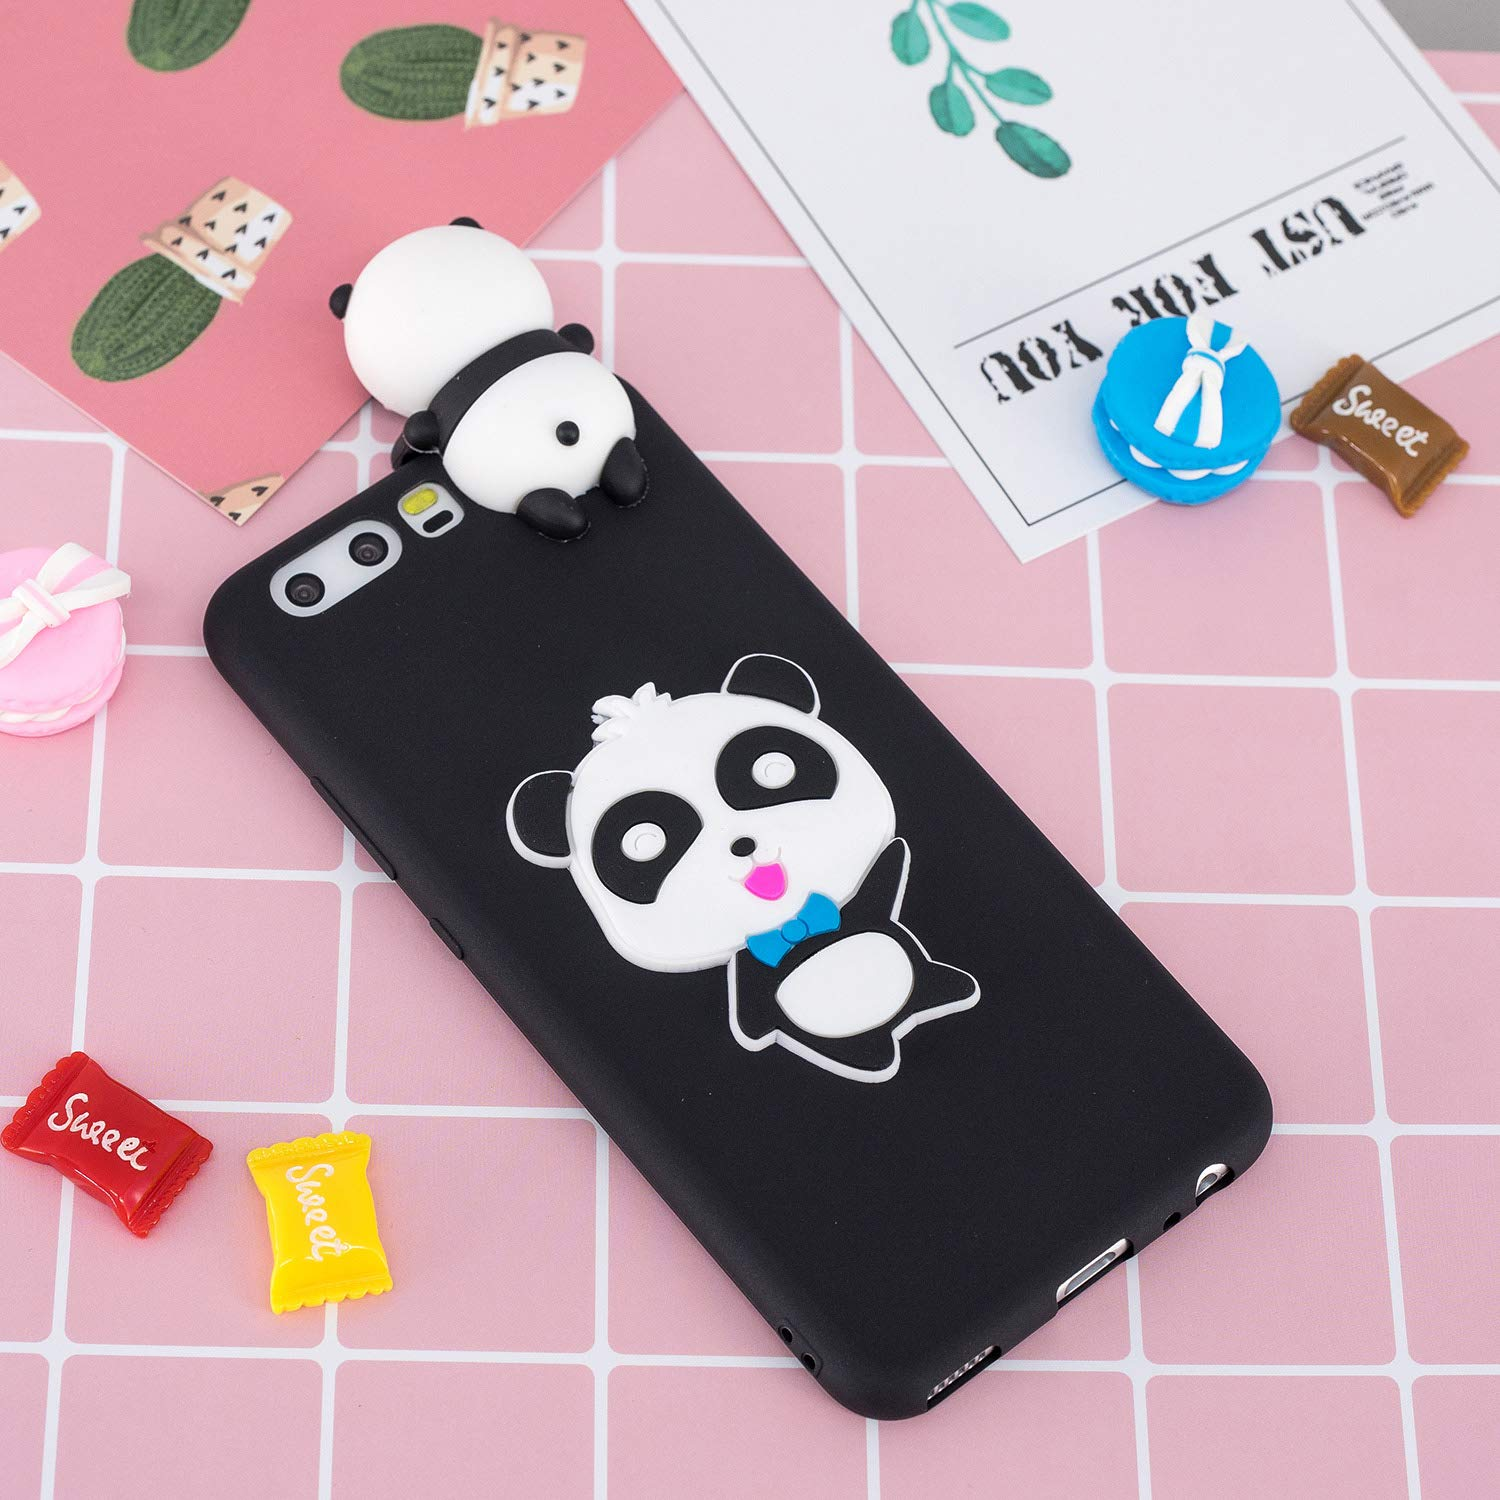 for Huawei P10 Silicone Case with Screen Protector,QFFUN 3D Cartoon [Panda] Pattern Design Soft Flexible Slim Fit Gel Rubber Cover,Shockproof Anti-Scratch Protective Case Bumper by QFFUN (Image #6)